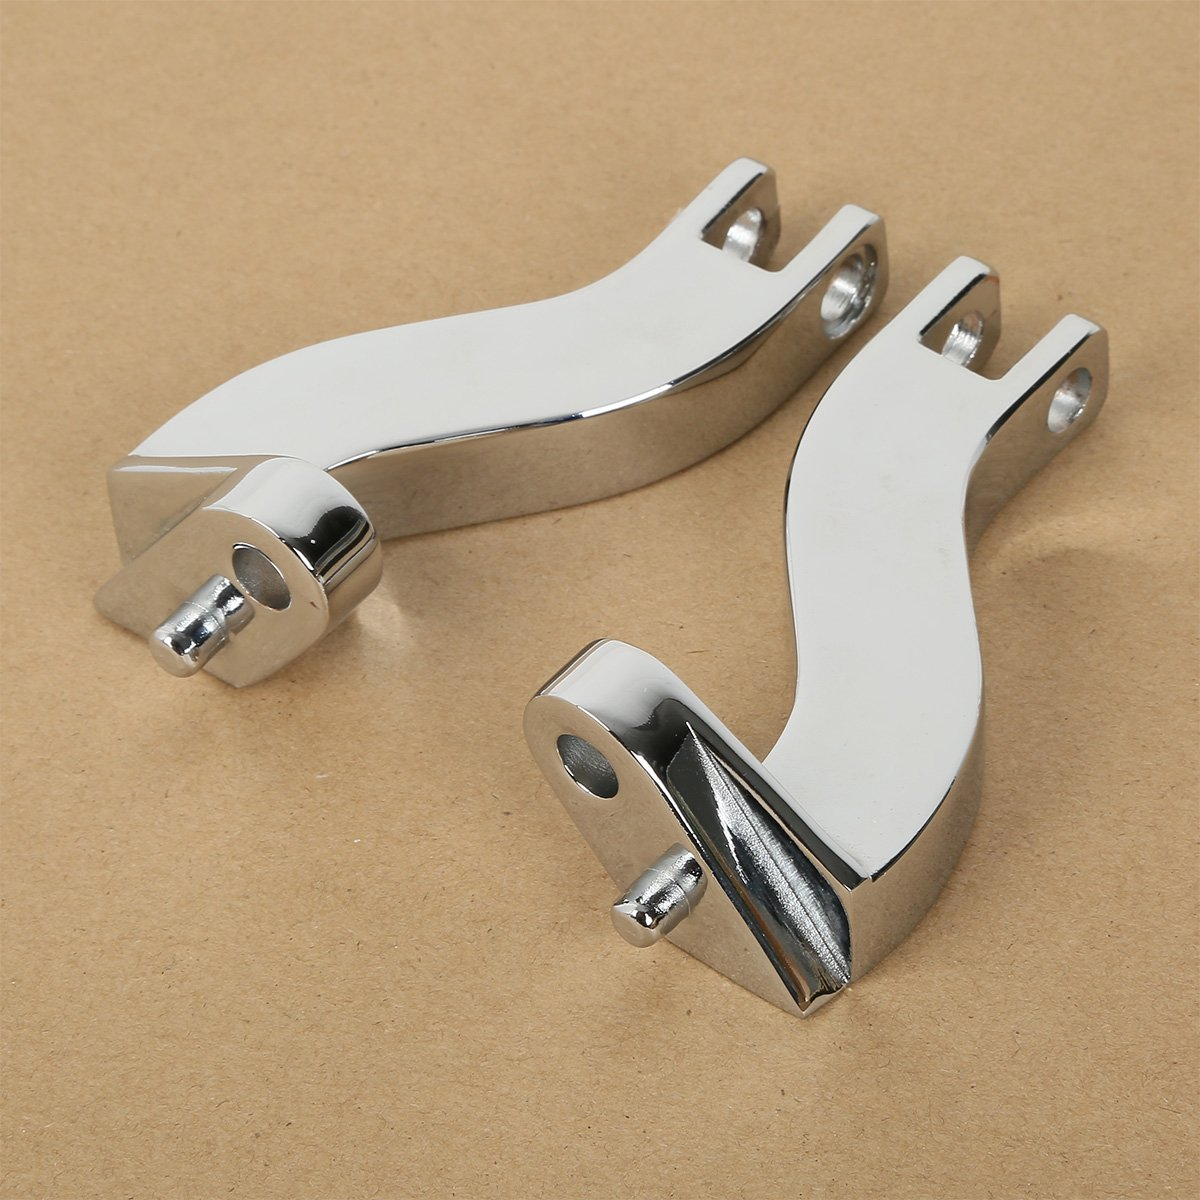 XMT-MOTO Passenger Footpeg Mount Bracket Kit for Harley Davidson FL Touring Models 1993-2016